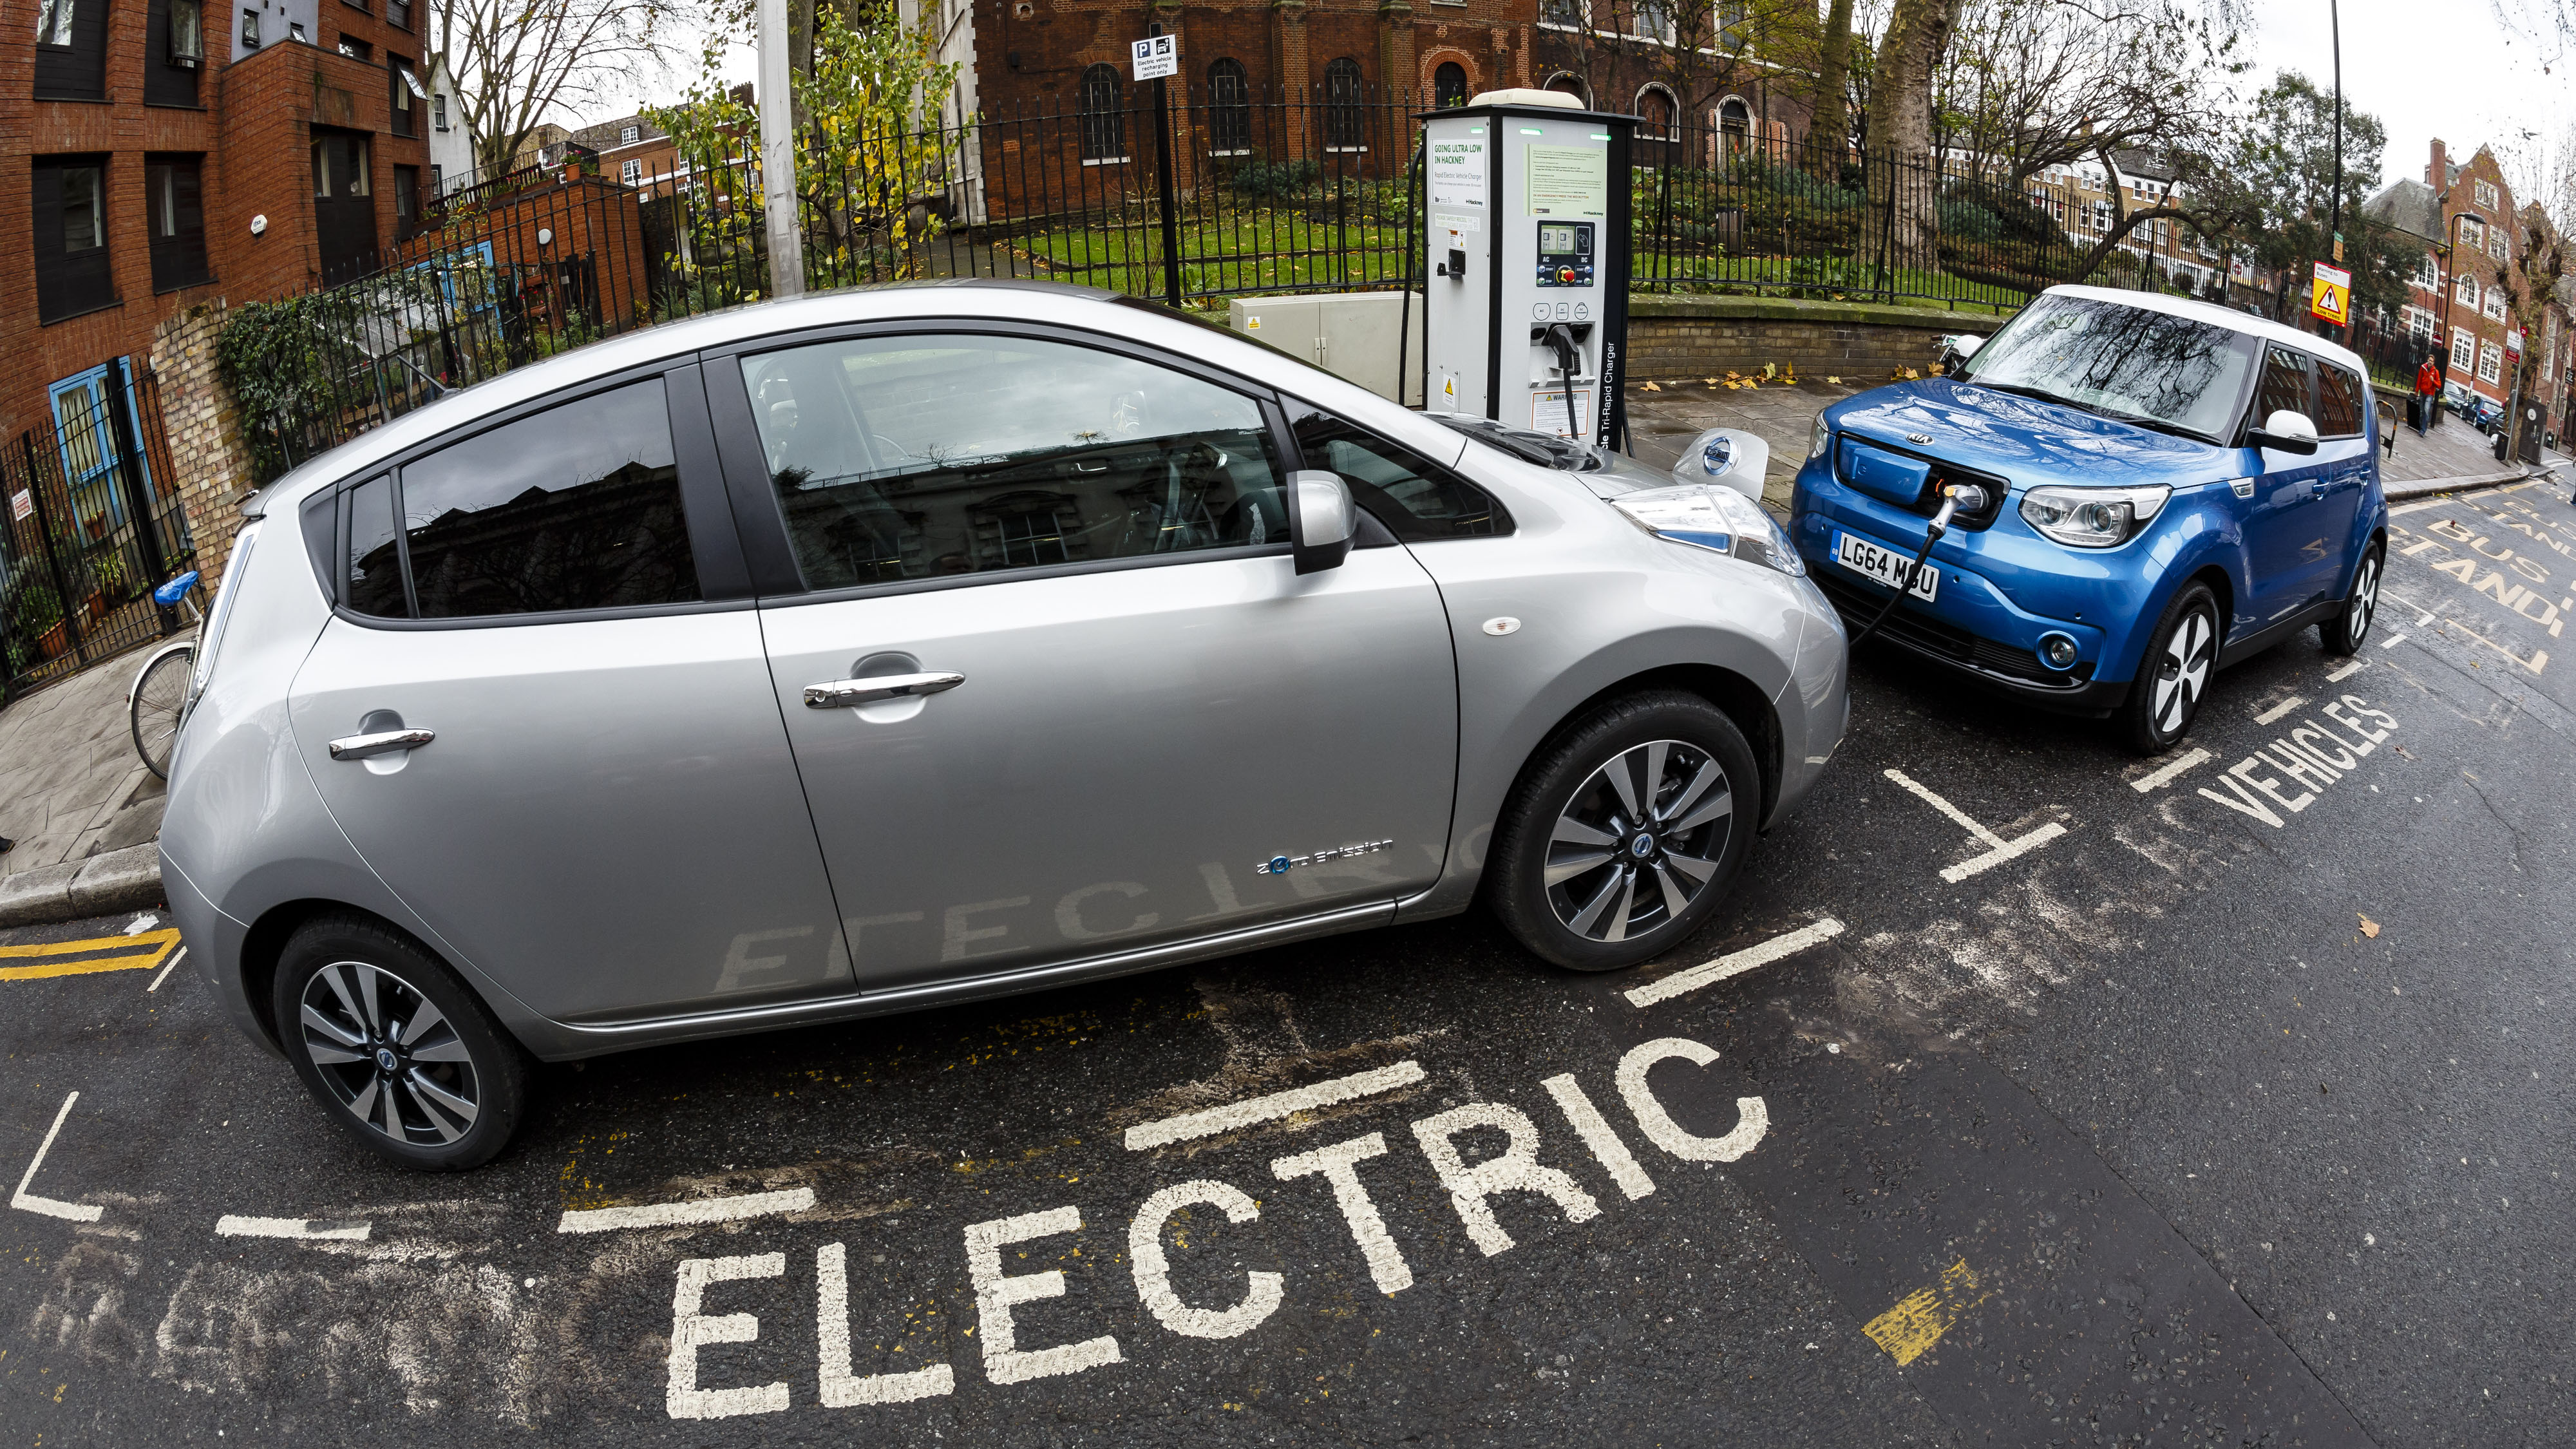 Electric vehicles are getting noisier, for safety's sake